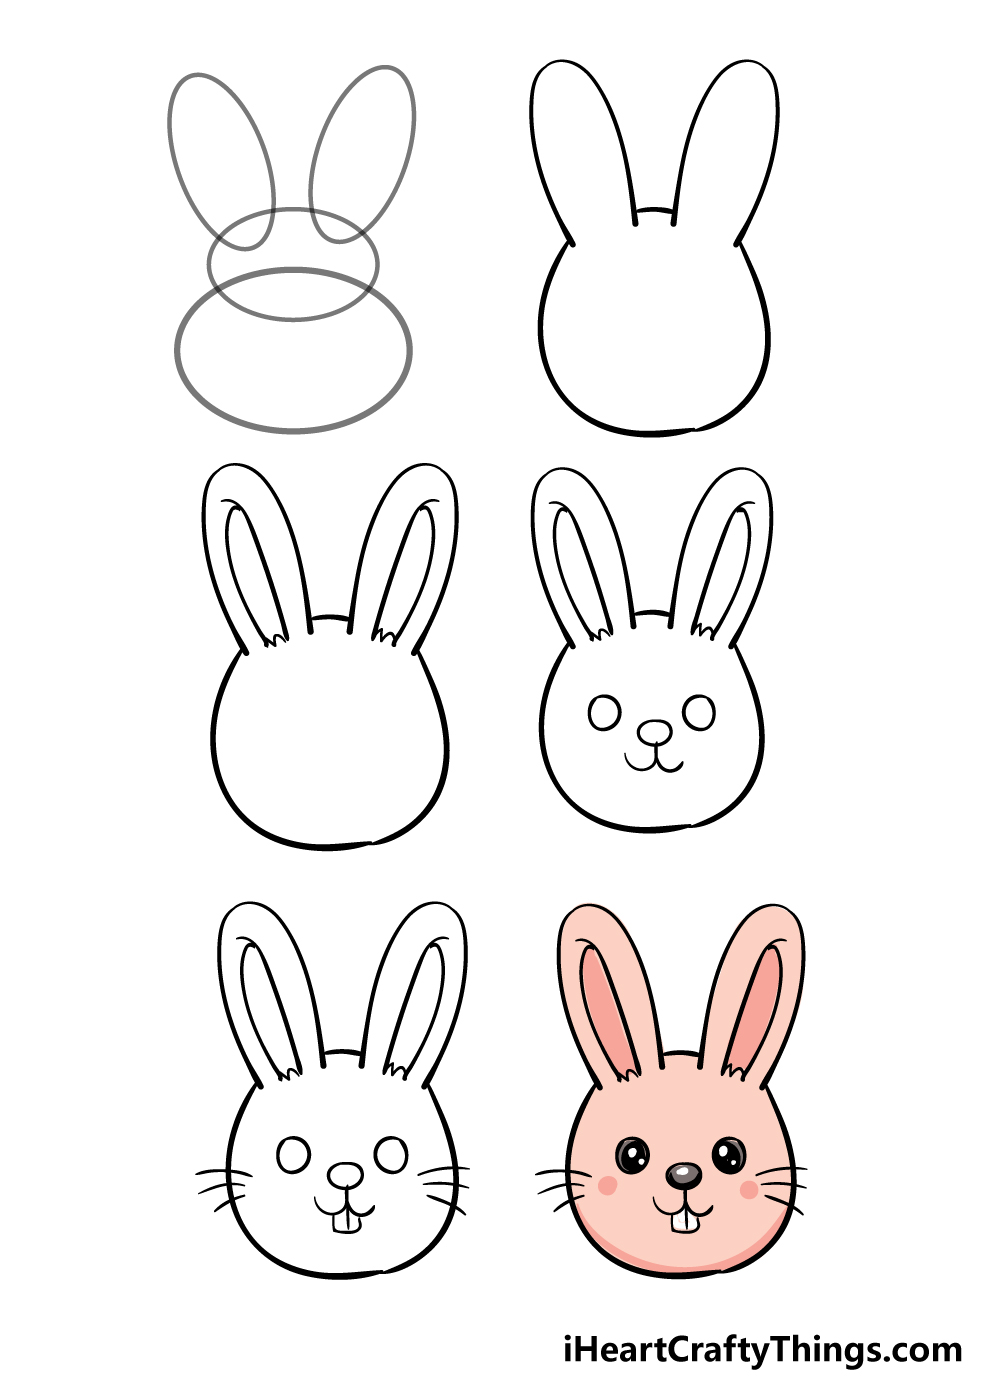 how to draw bunny face in 6 steps